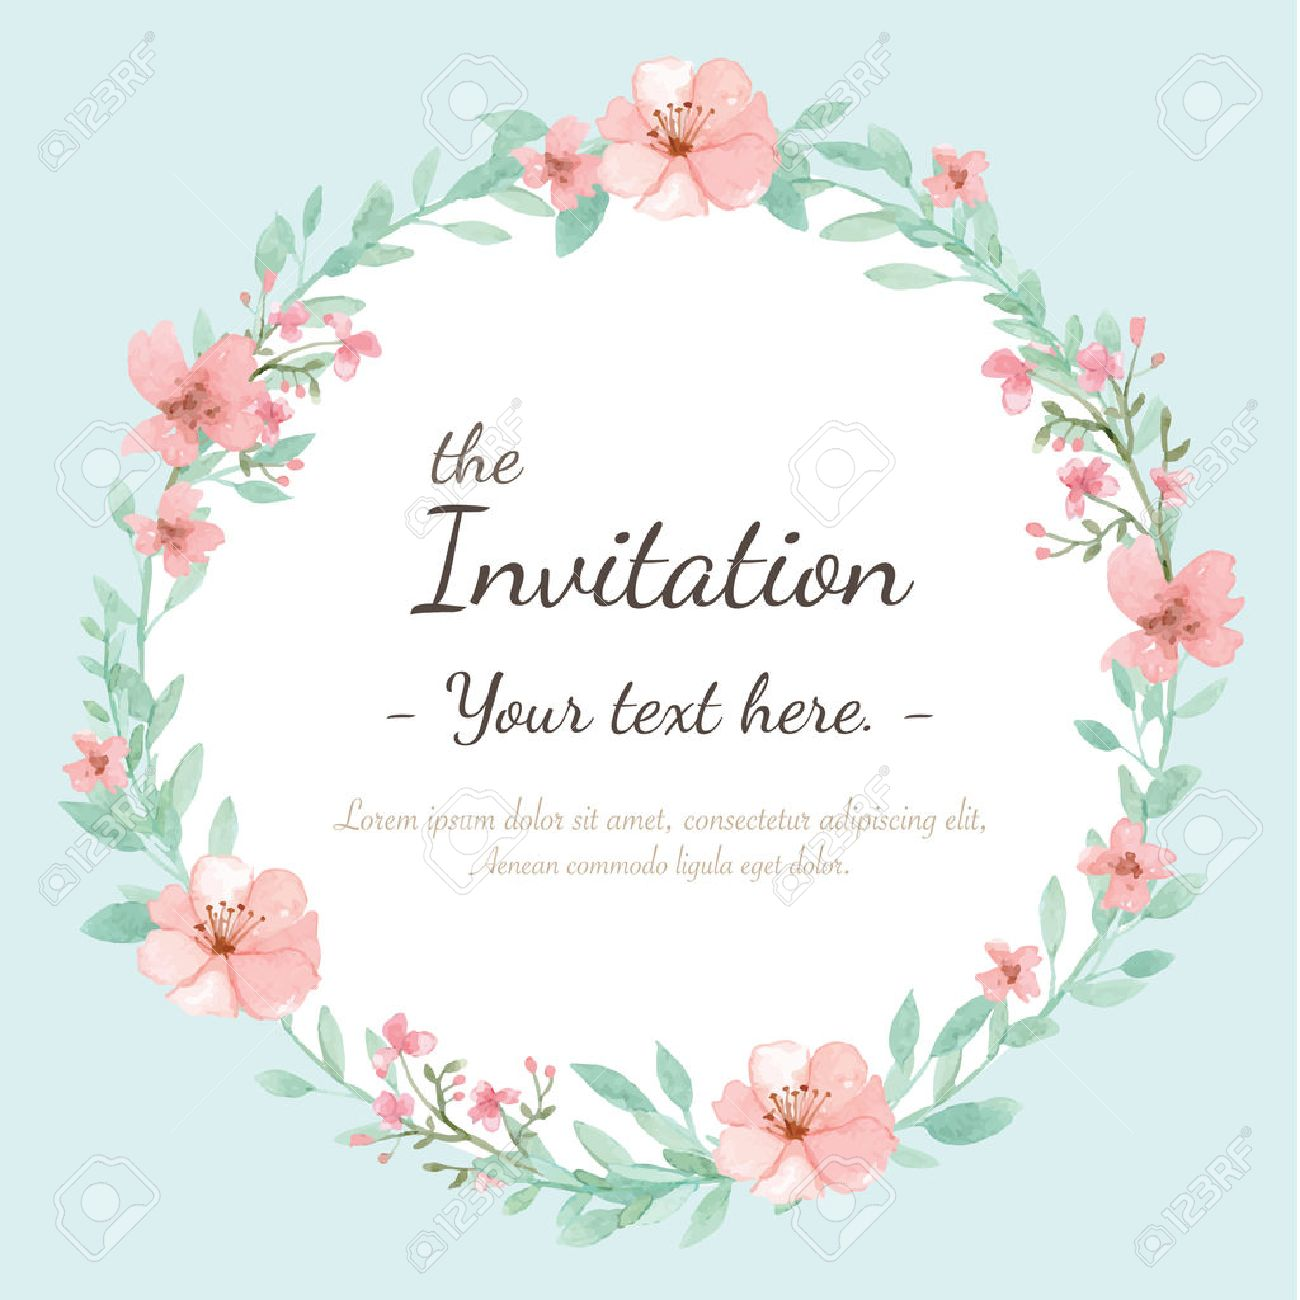 Einvitation Card Invitation Free Vector Art 4713 Free Downloads